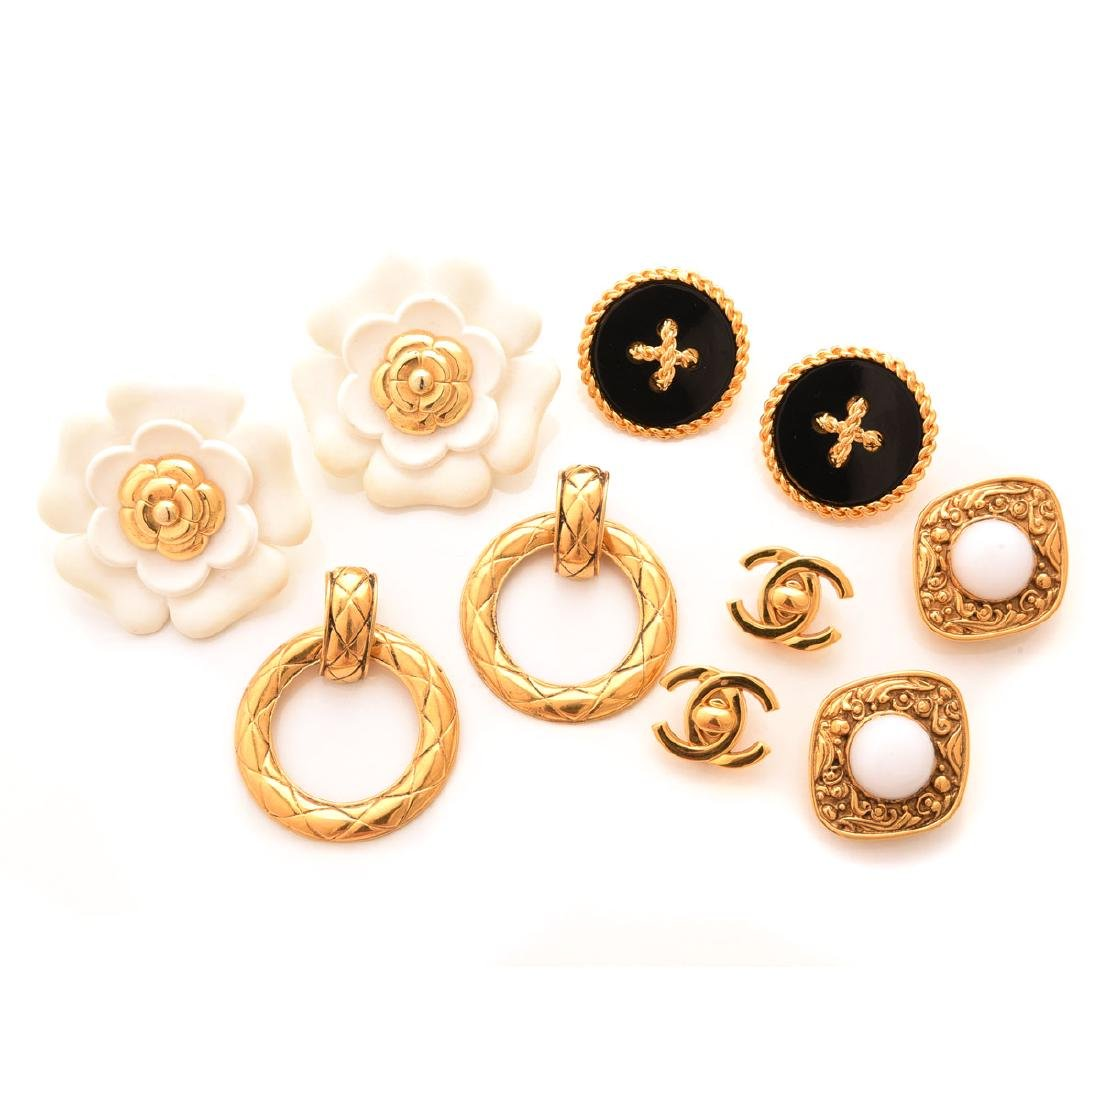 Collection of Five Pairs of Chanel Earrings.